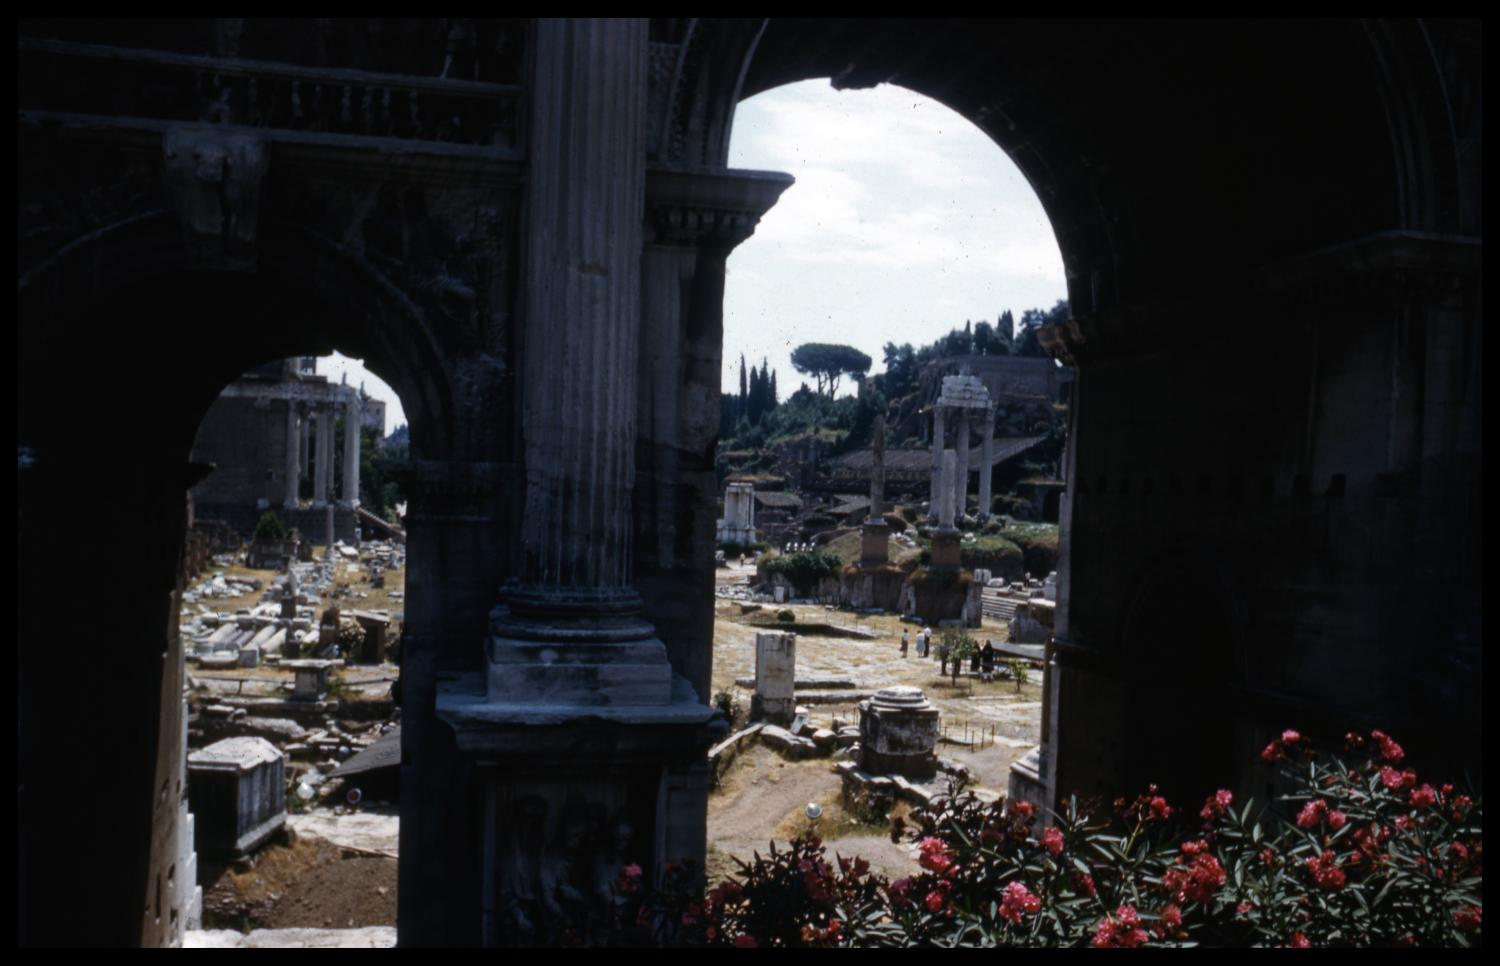 [Arch of Septimius Severus]                                                                                                      [Sequence #]: 1 of 1